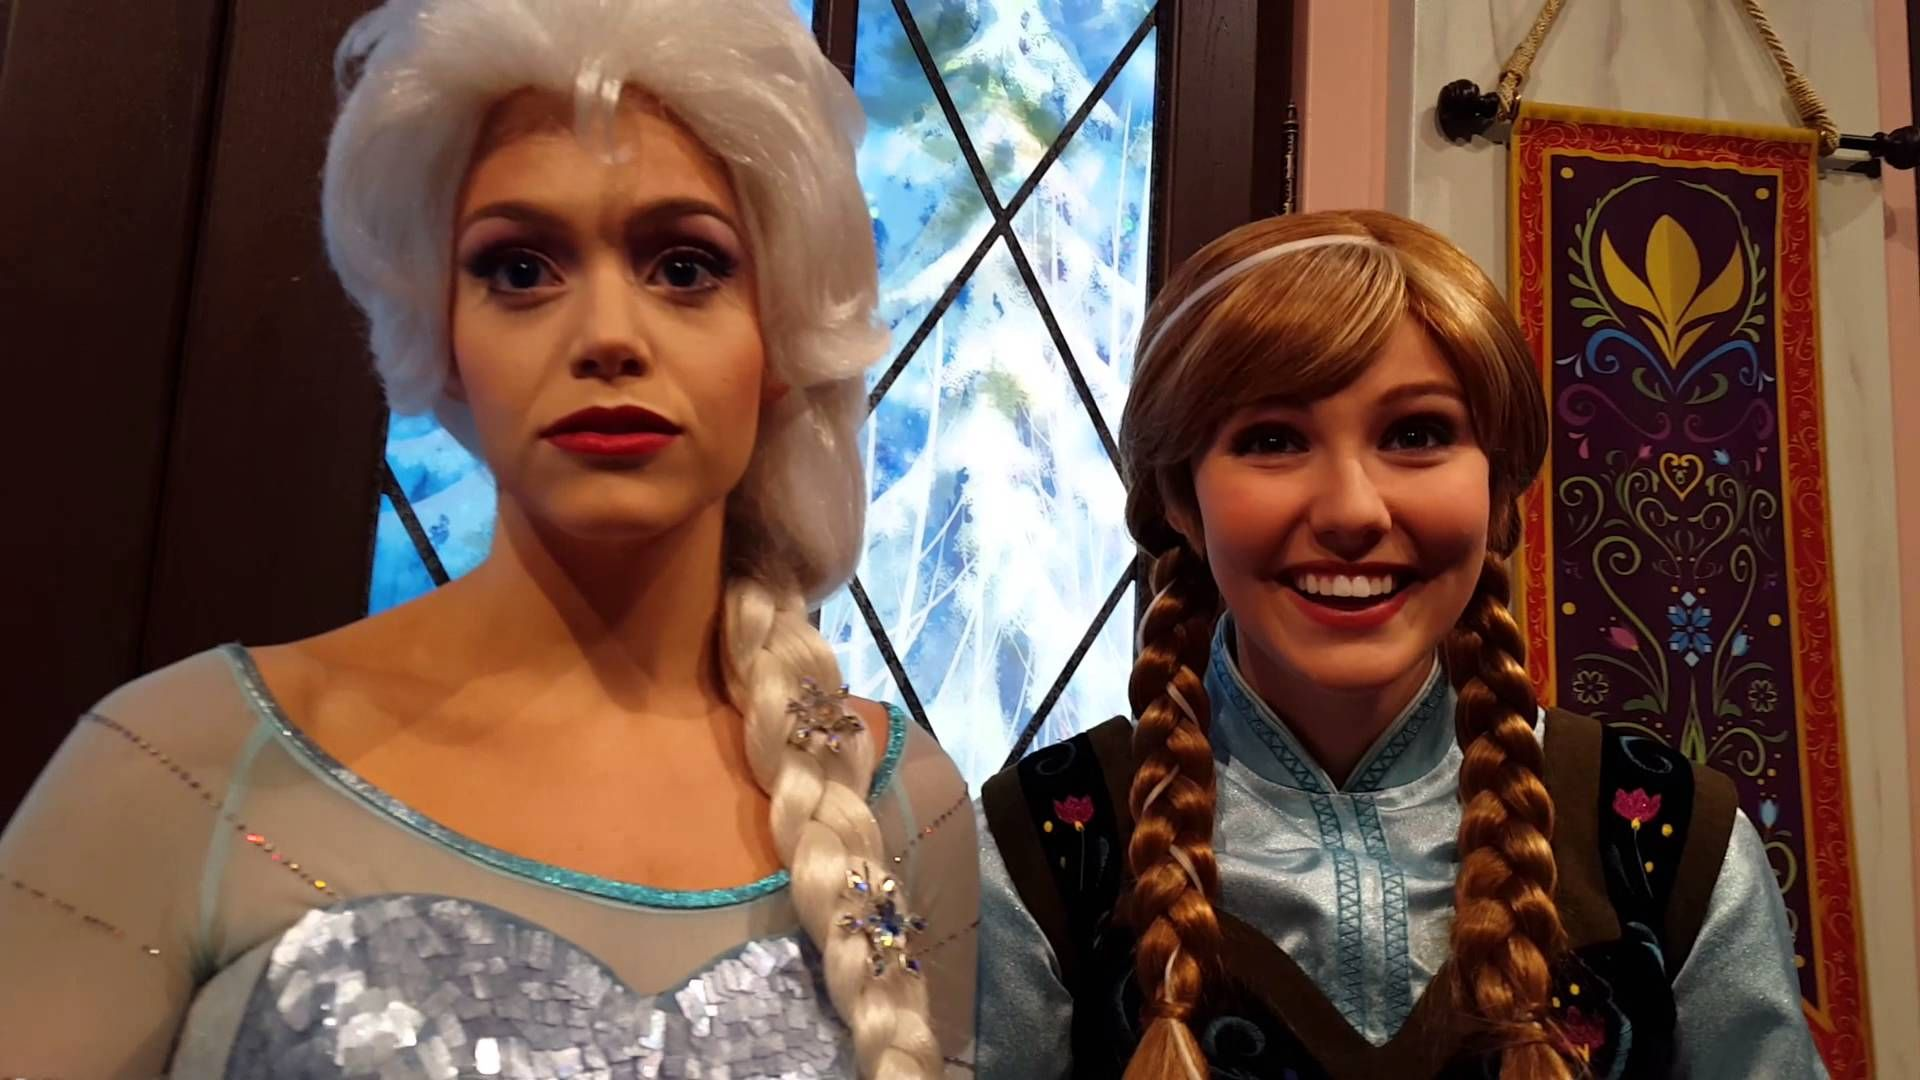 Pin by carl green on ironbat pinterest queen elsa elsa and meeting frozen sisters princess anna and queen elsa disney ca adventure during the diamond anniversary celebration on wednesday november 2015 m4hsunfo